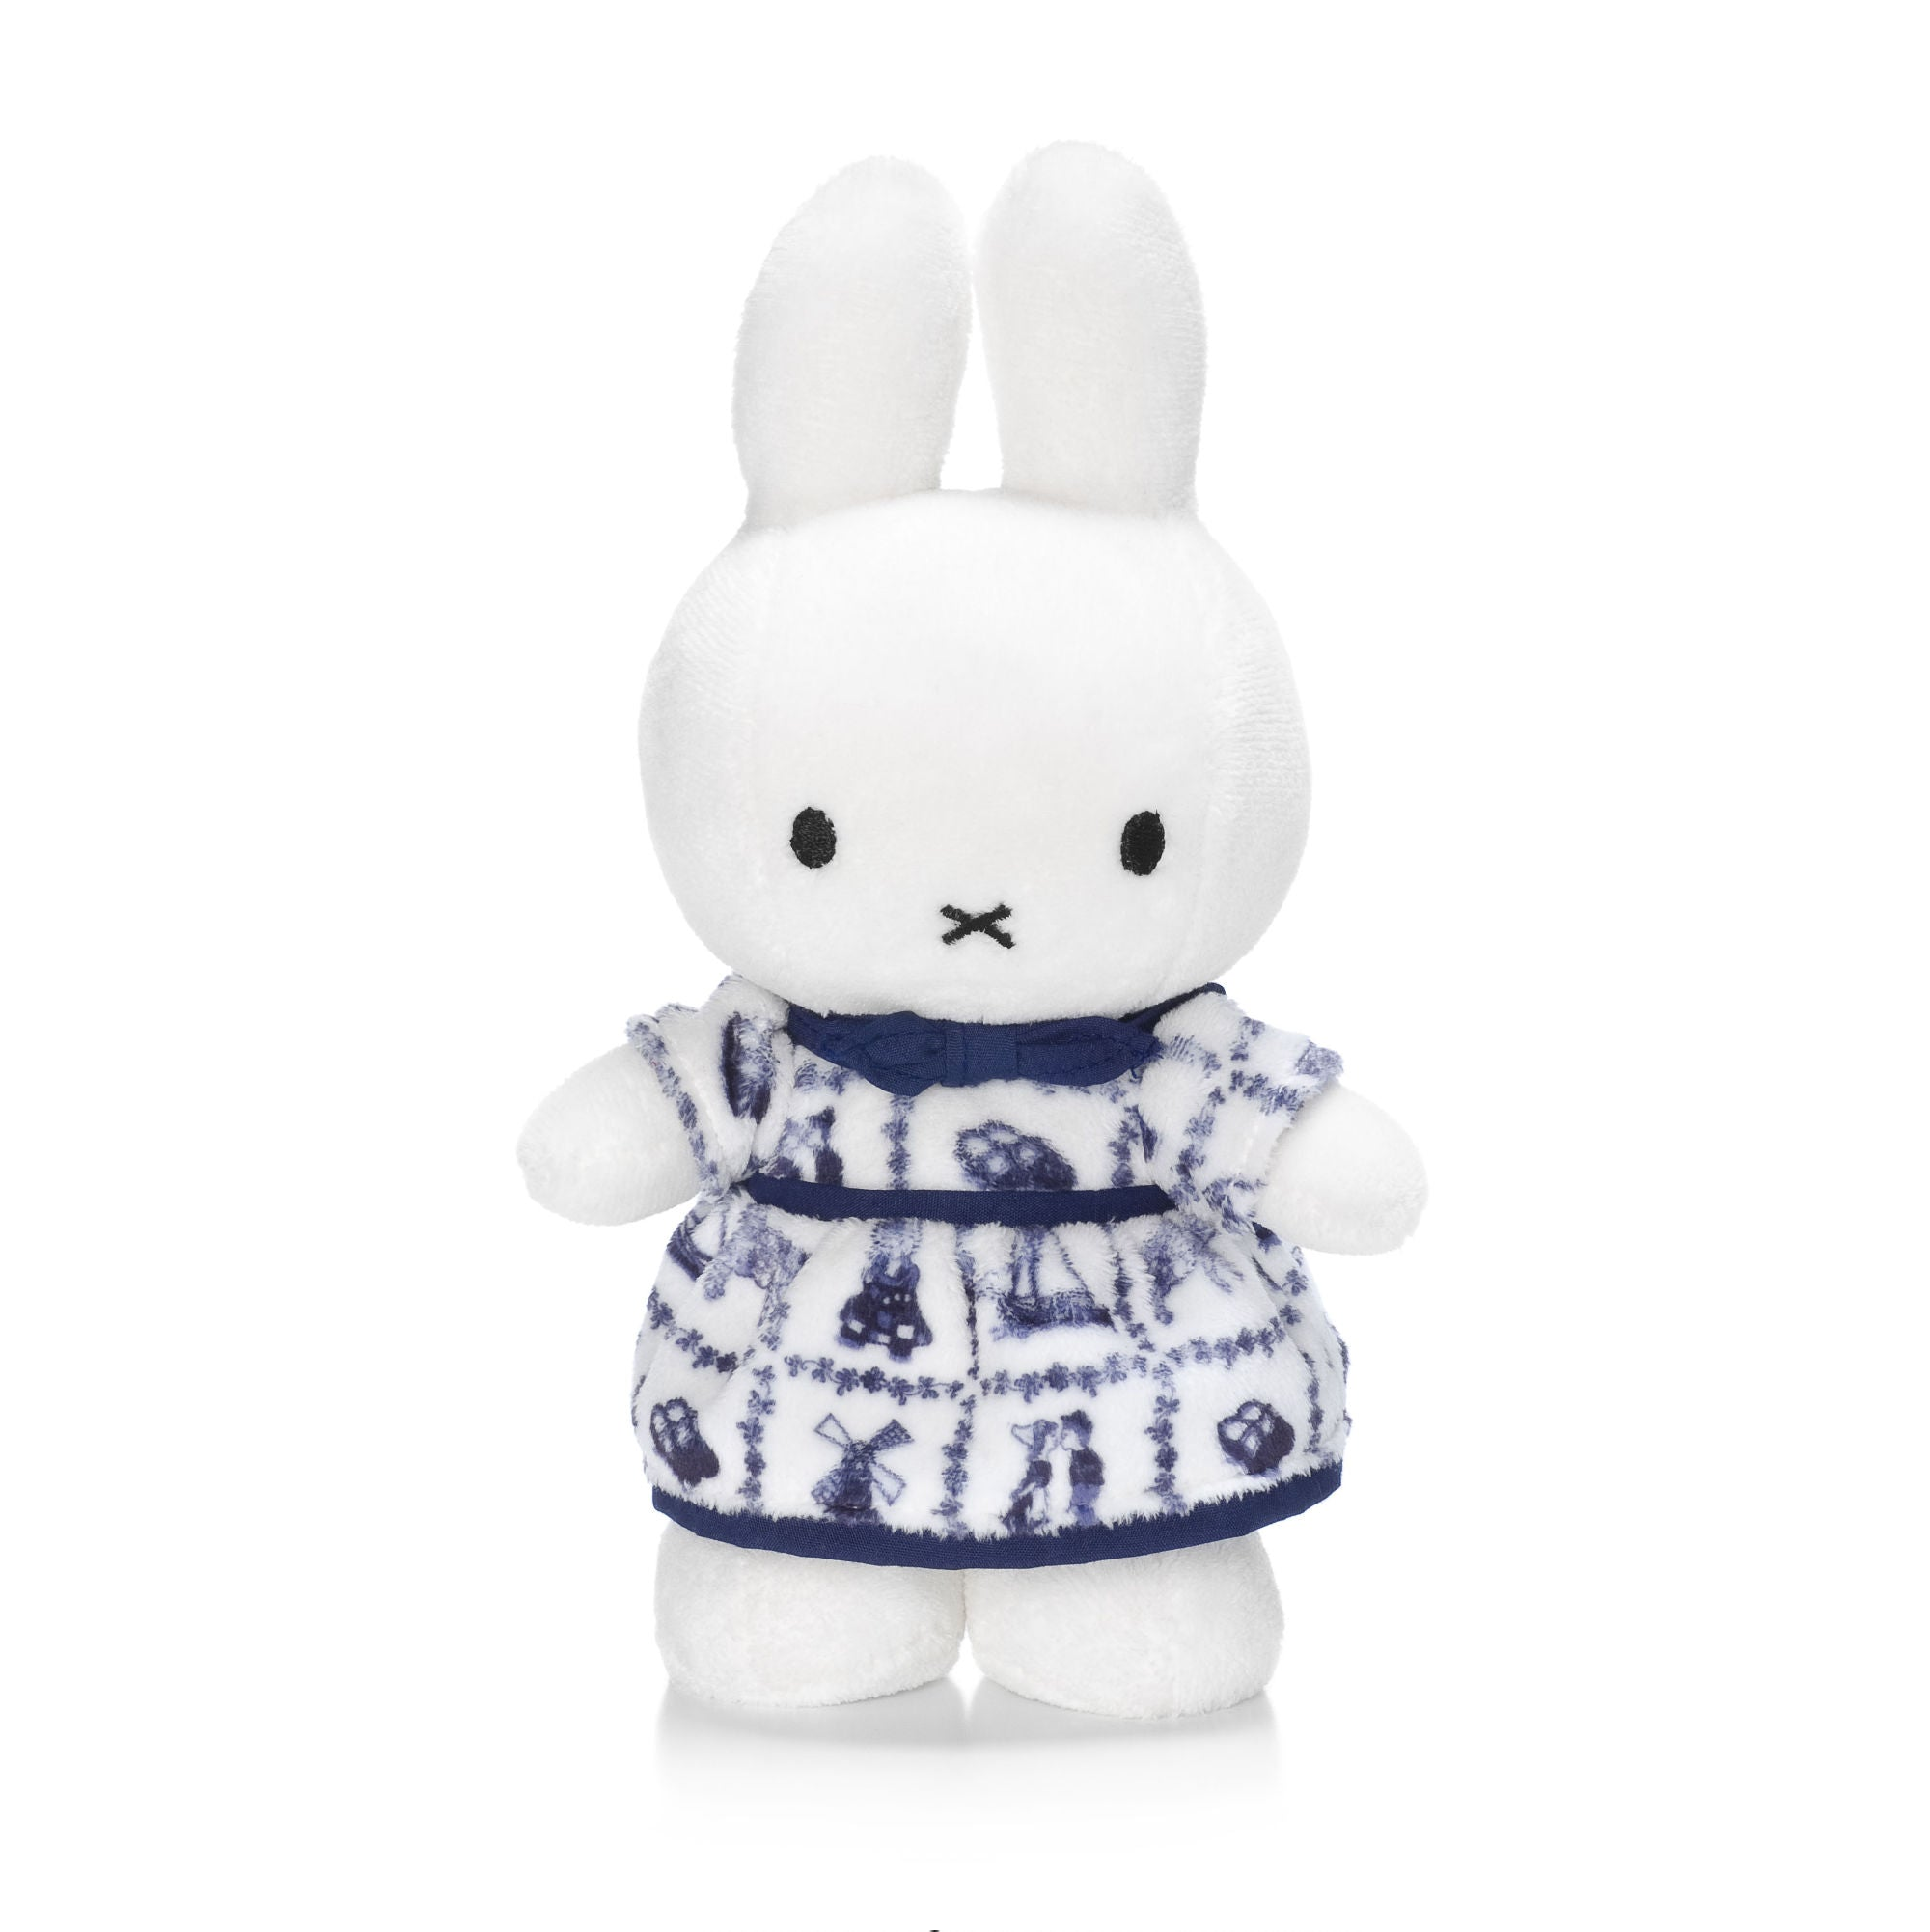 Miffy 24cm Dolls, Delft Blue Dress